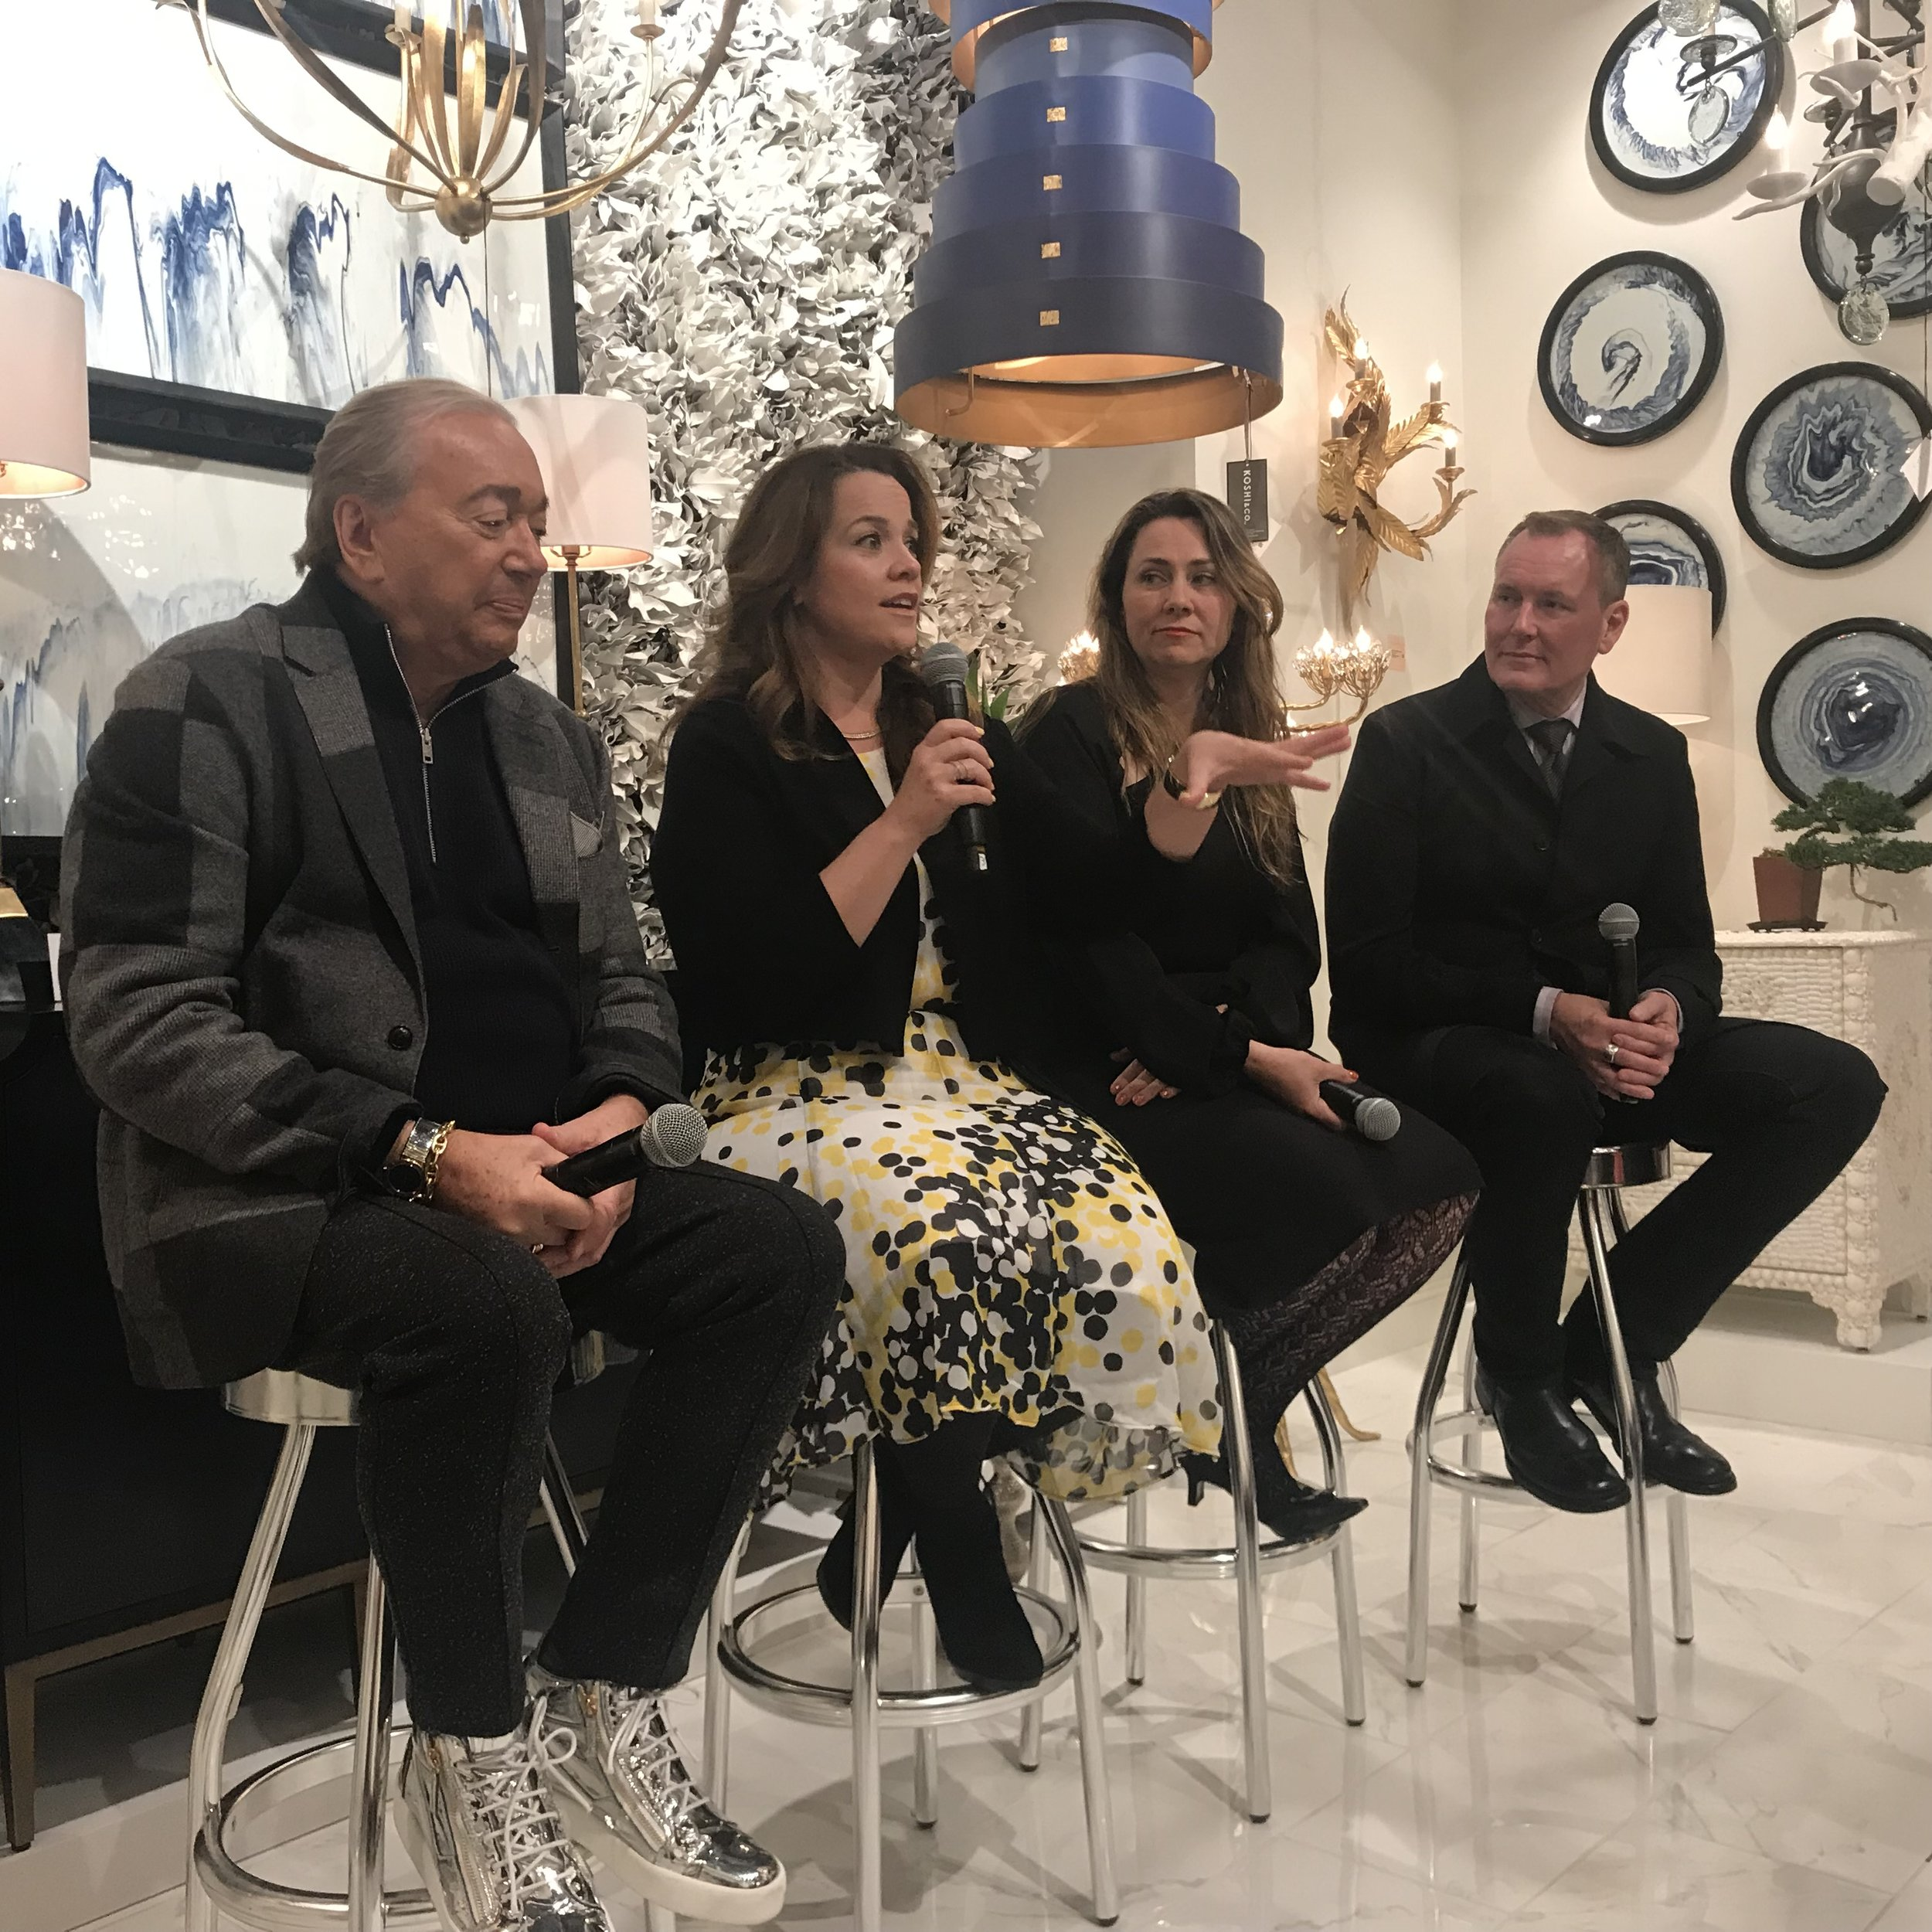 DT sponsored a great panel on the Art of Collecting with Larry Laslo, Stacey Tiveron, Michelle Workman, and Barry Dixon. Hosted by Currey & Company.